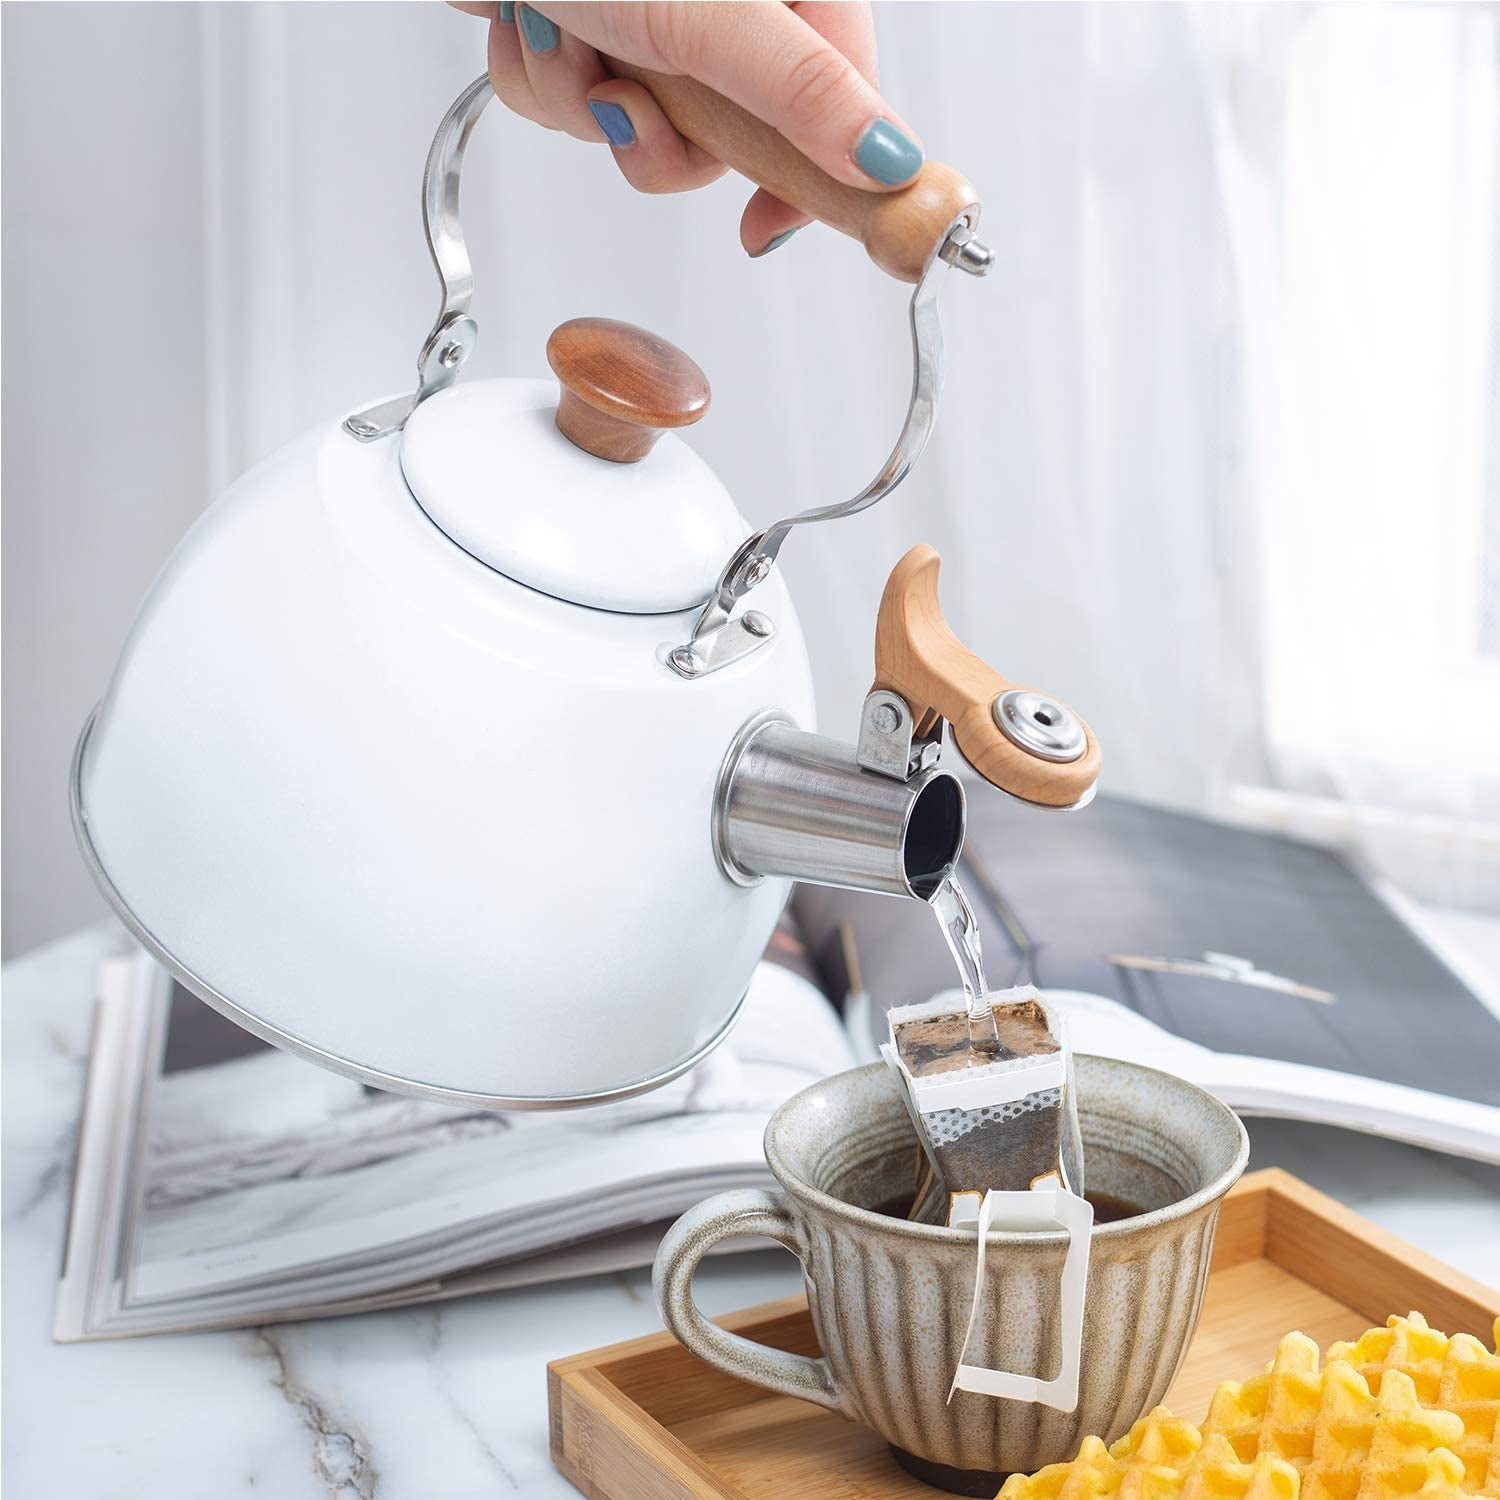 a model pouring hot water from a white kettle